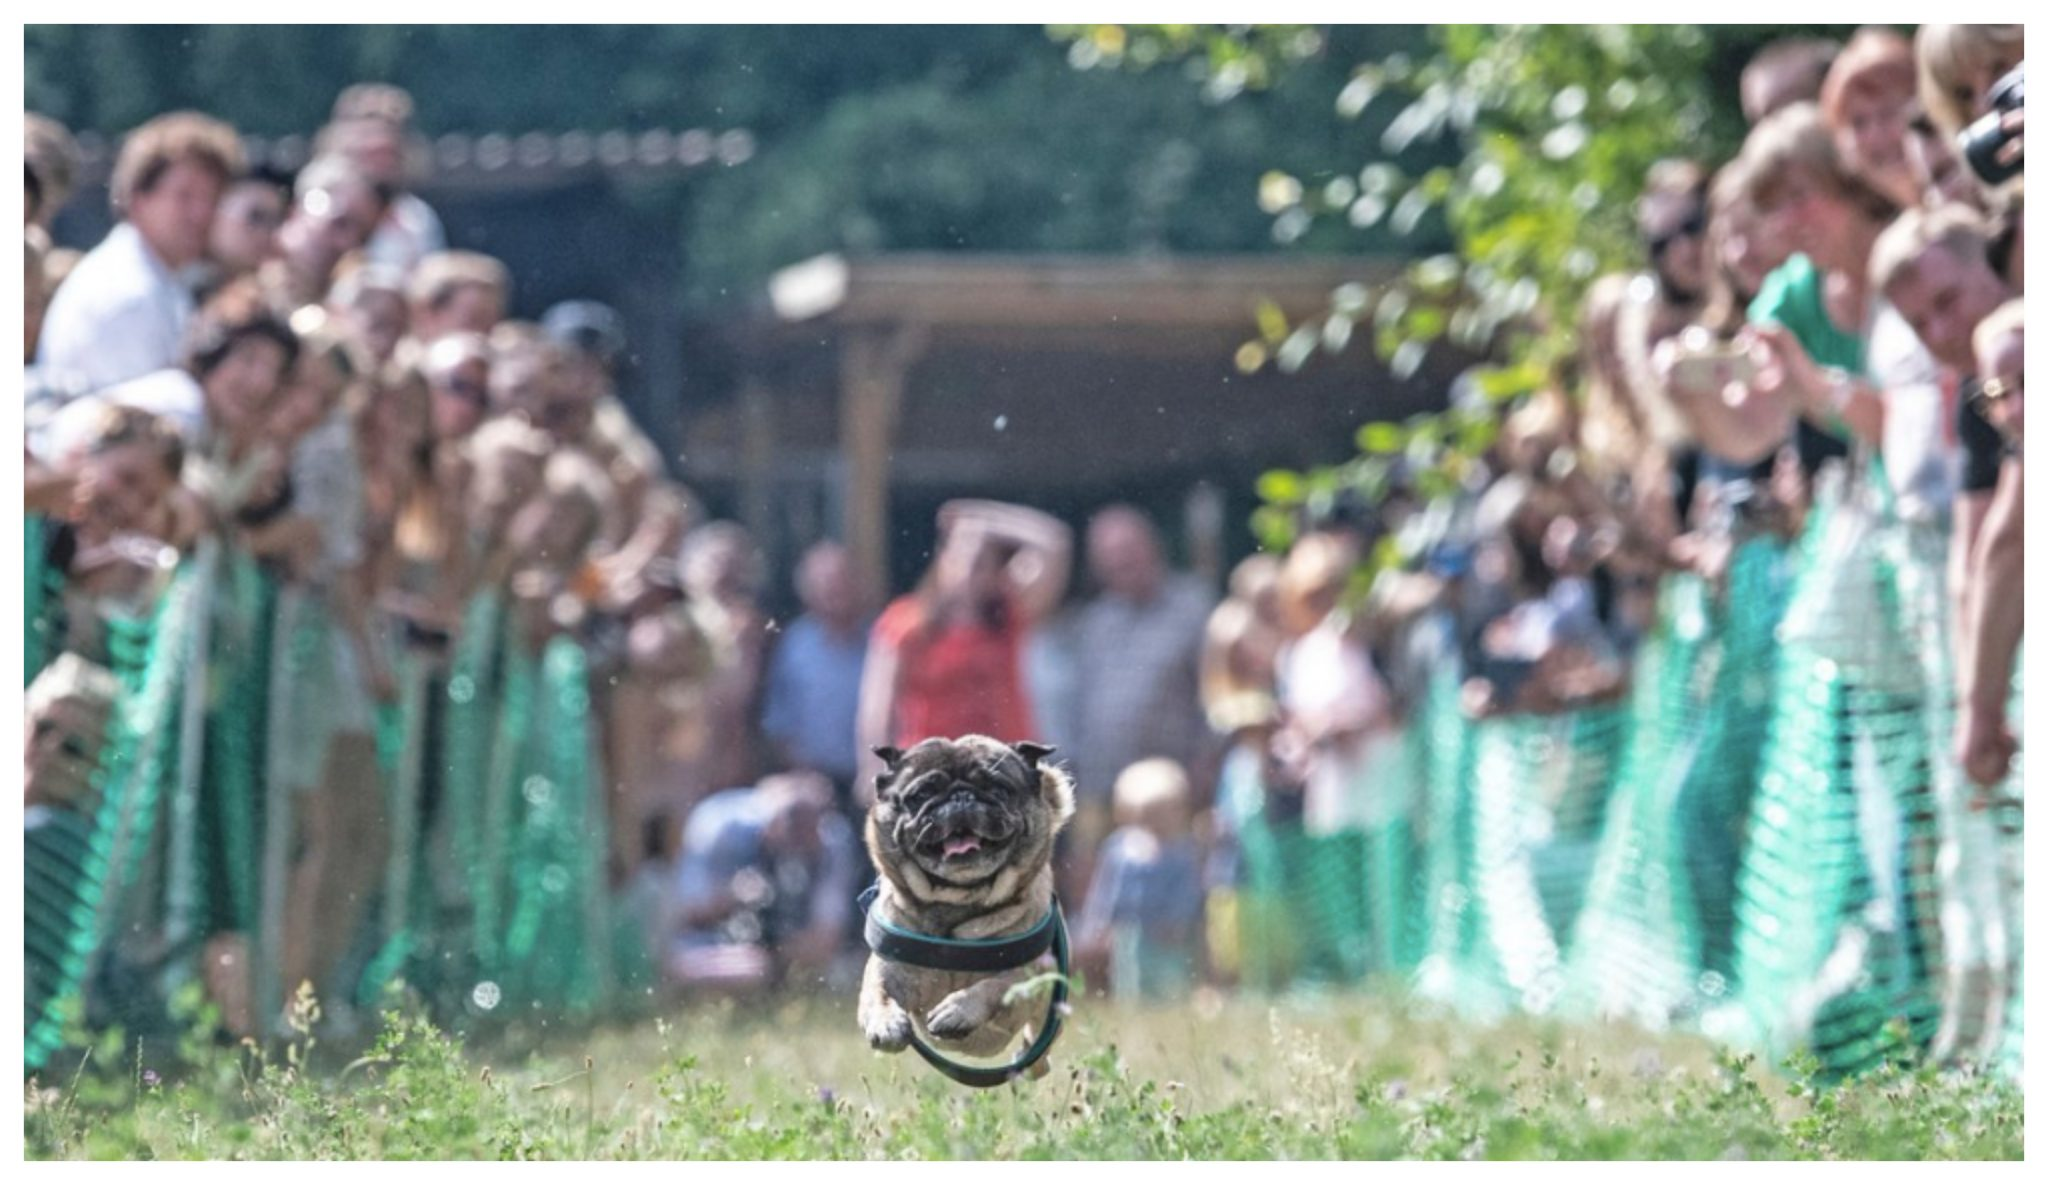 4-Year-Old Pug Crowned 'Usain Bolt Of Pugs' After Finishing Race In Less Than 6 Seconds